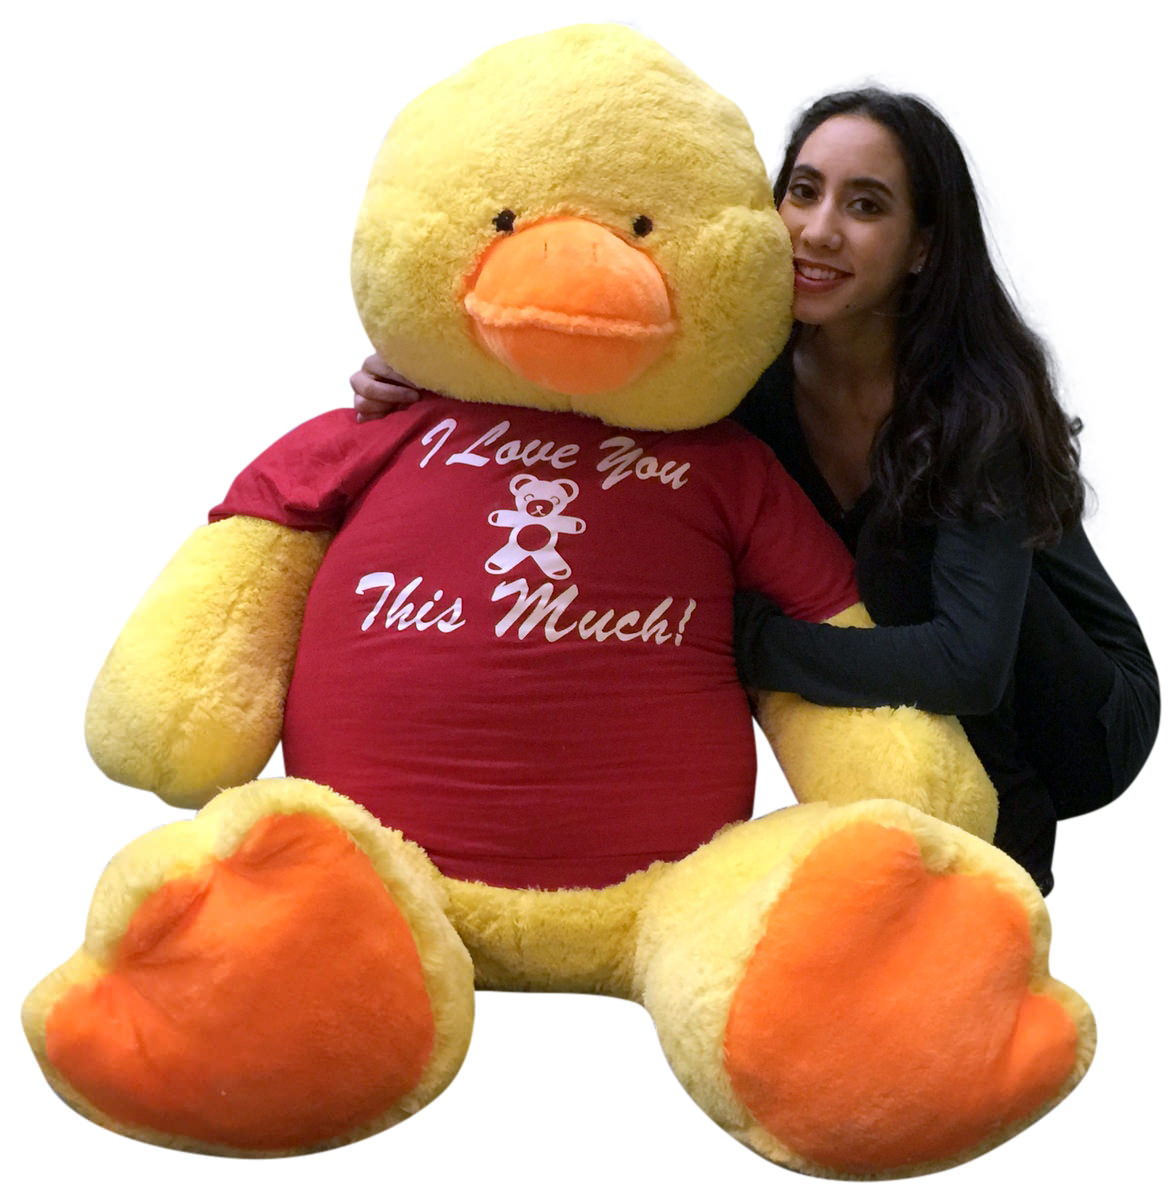 Giant Stuffed Duck 48 Inches Soft 4 Foot Big Plush I Love You This